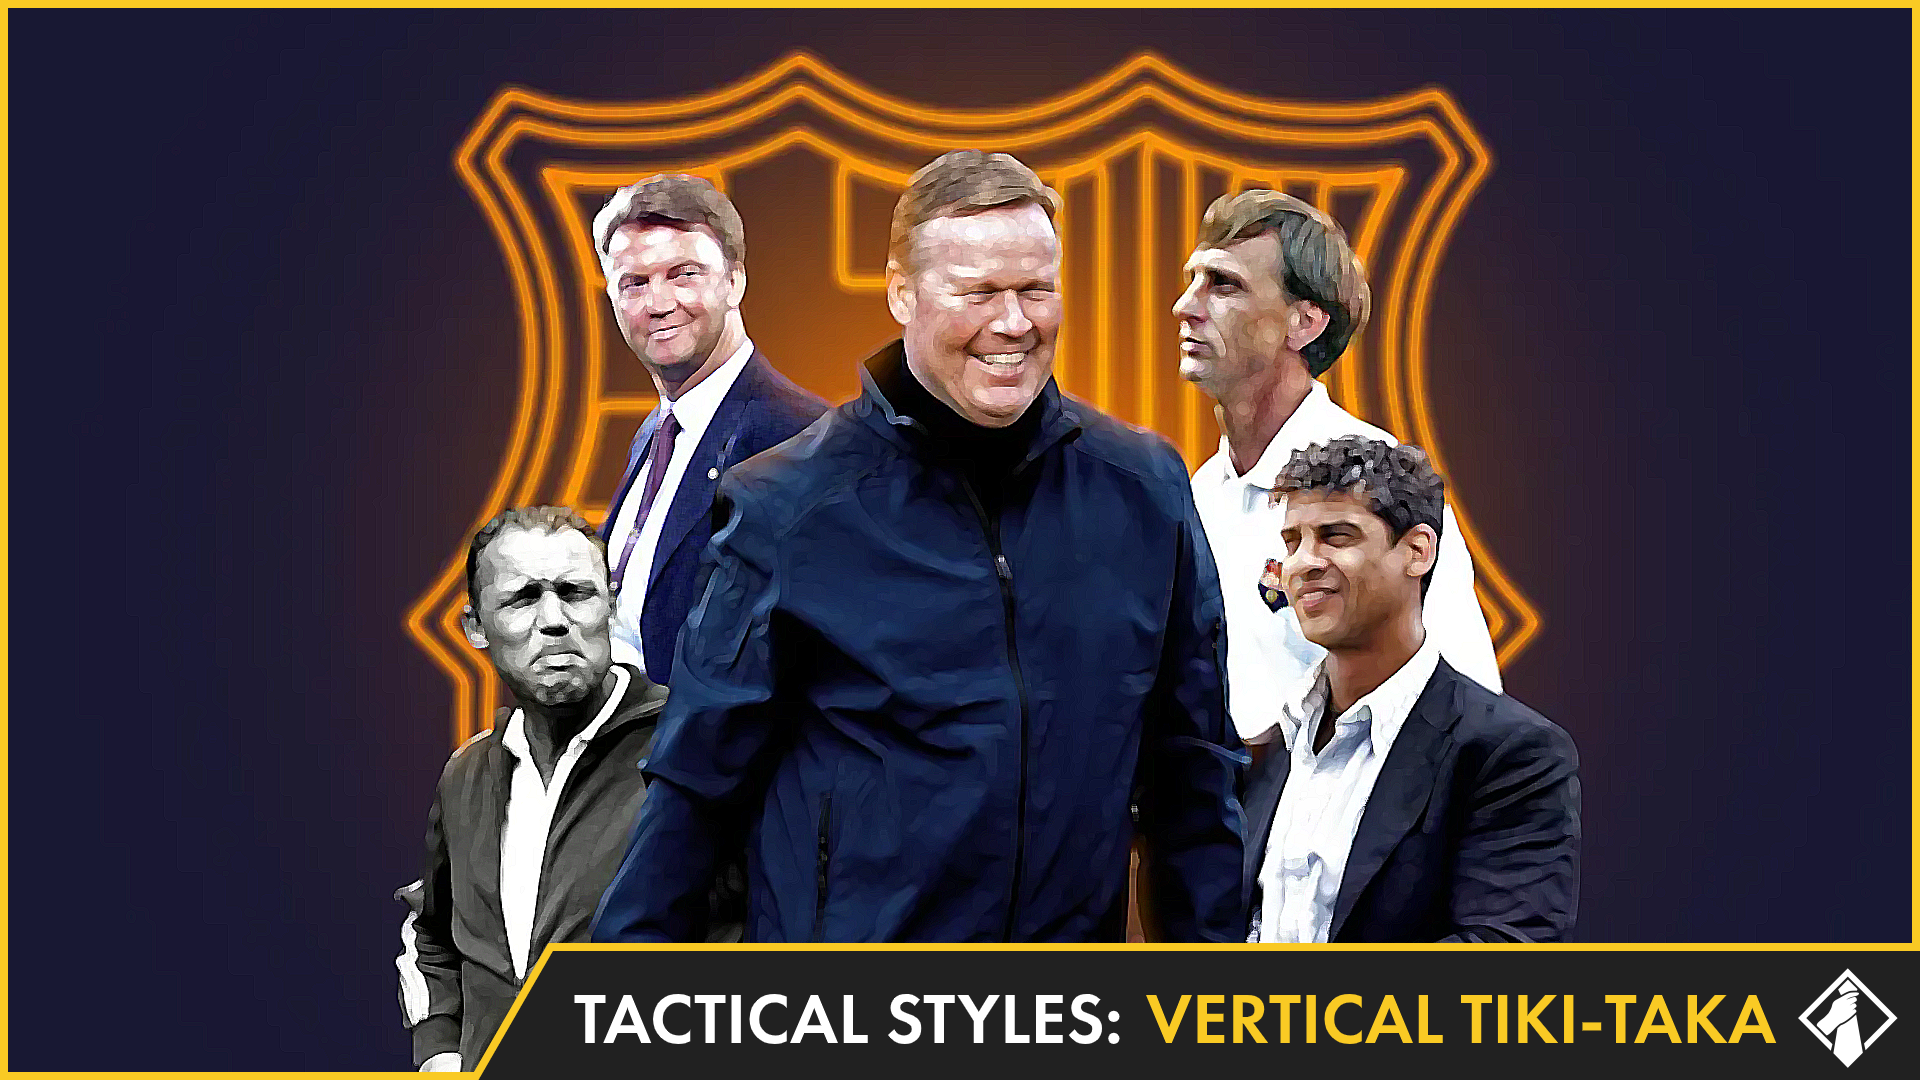 """FM21 - Tactical Styles: Vertical Tiki-Taka"" feature image"